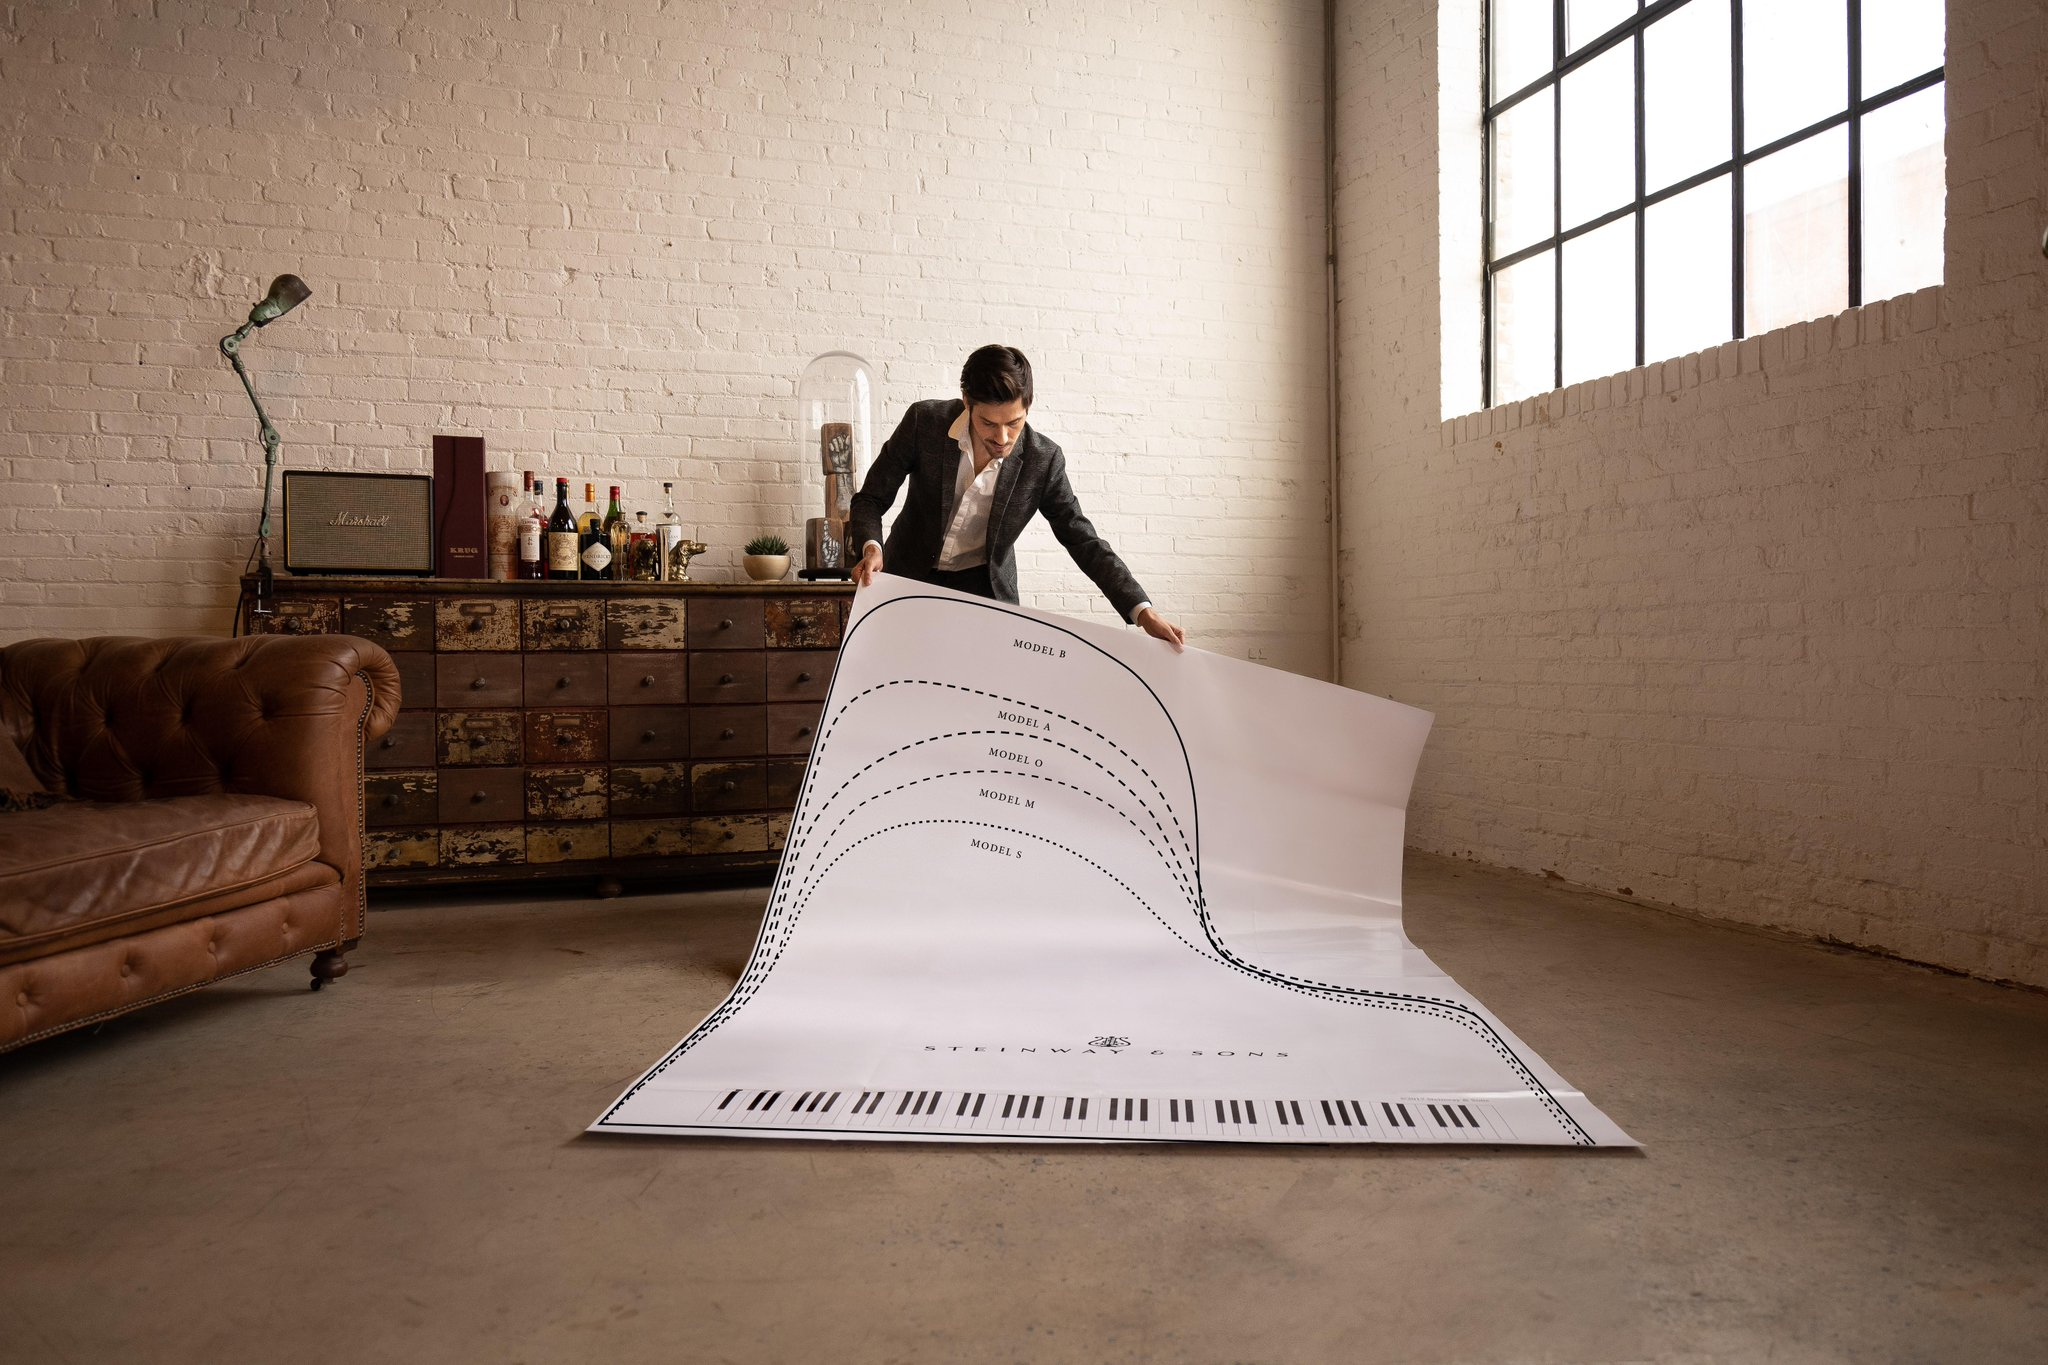 Steinway grand in your home. Our floor template can help you decide which Steinway model size is right for you ➡️fal.cn/3456d